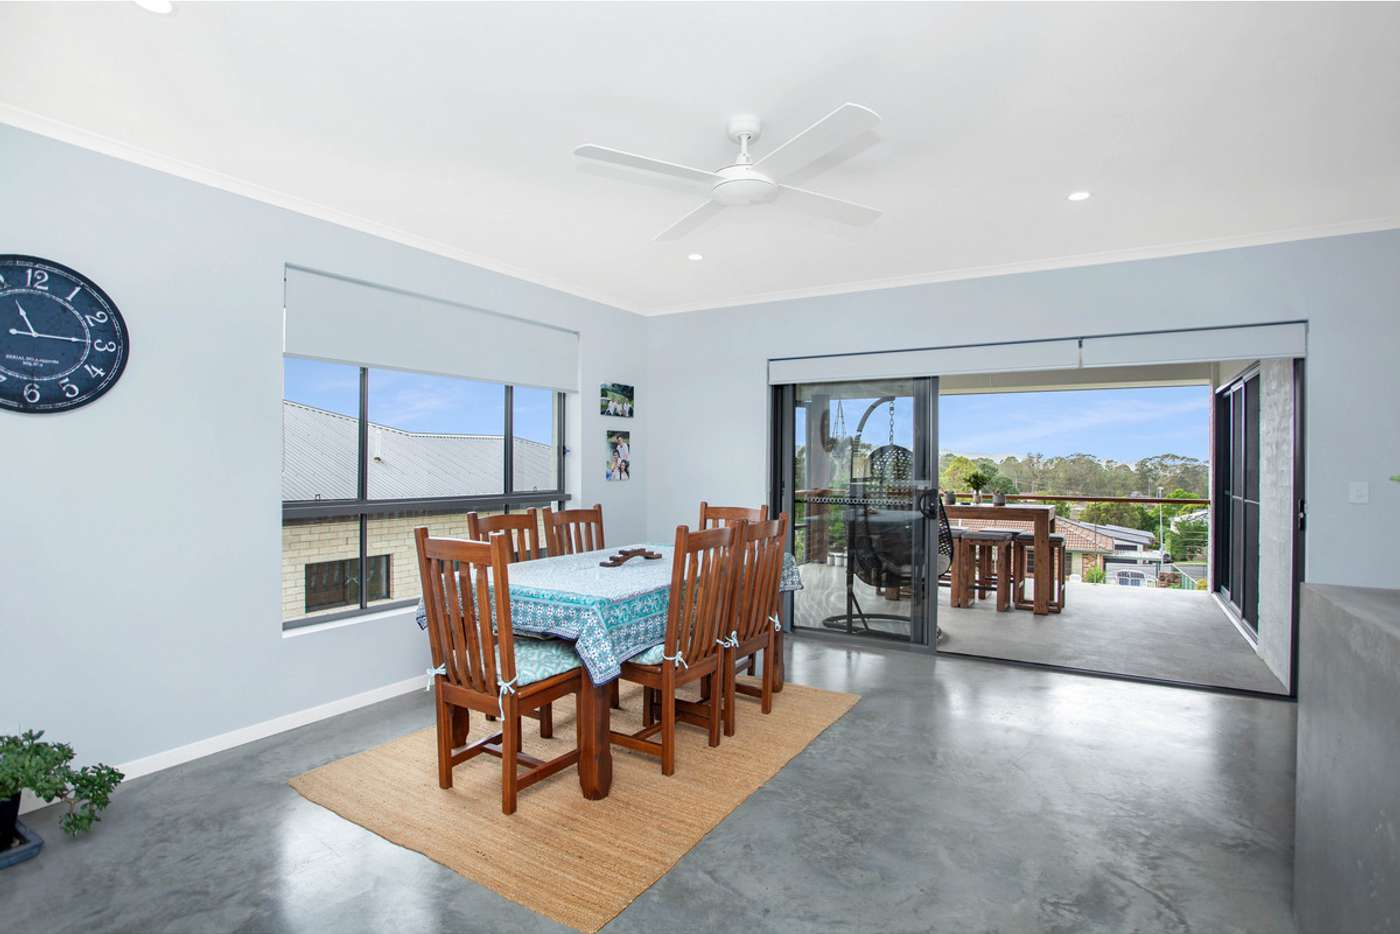 Seventh view of Homely house listing, 16 Treetops Parade, Wingham NSW 2429